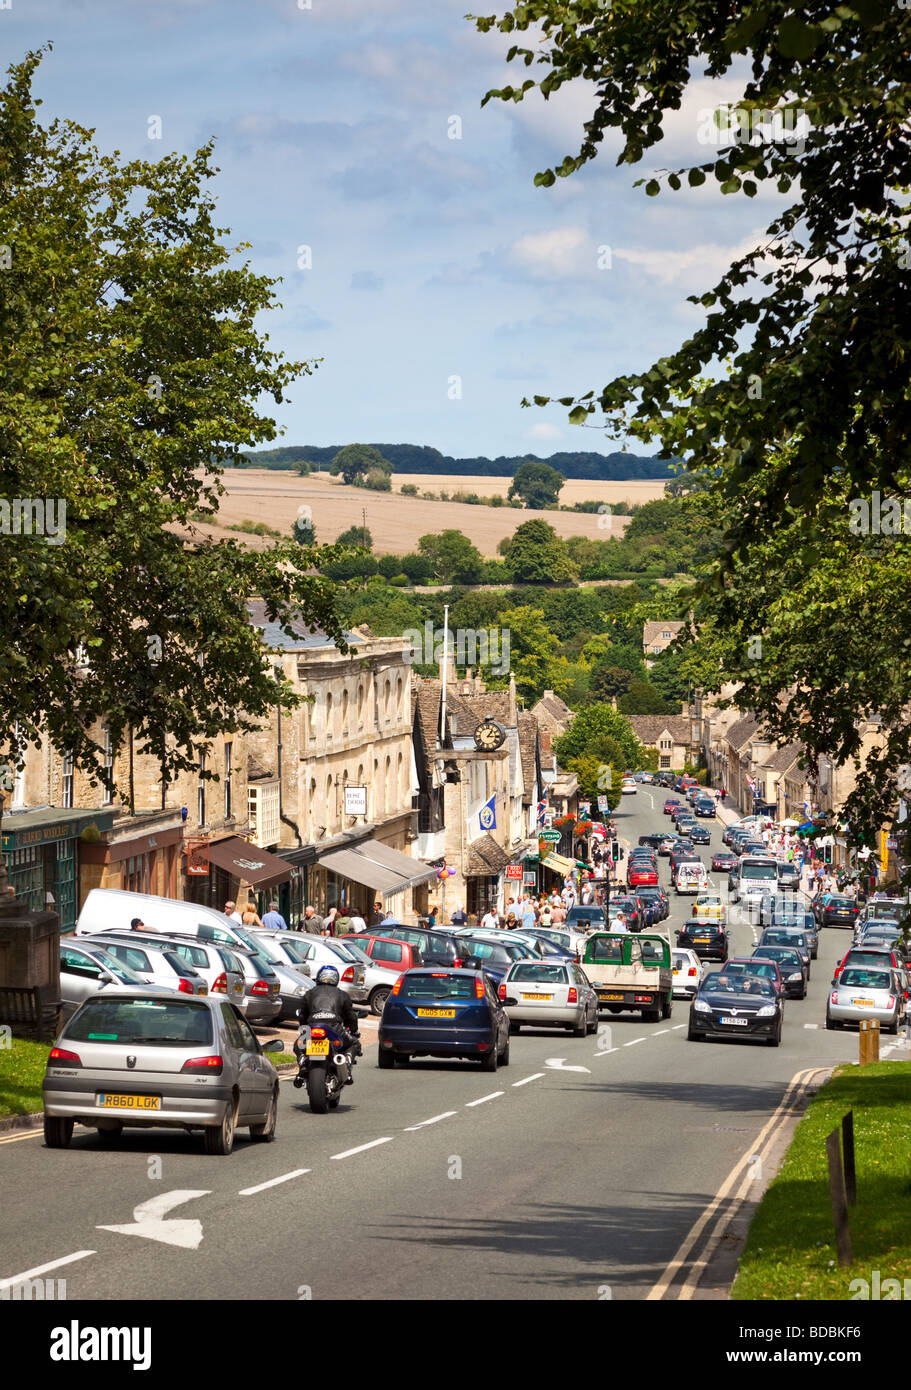 Traffic jam in the Cotswolds town of Burford, Oxfordshire, UK - in high summer - Stock Image